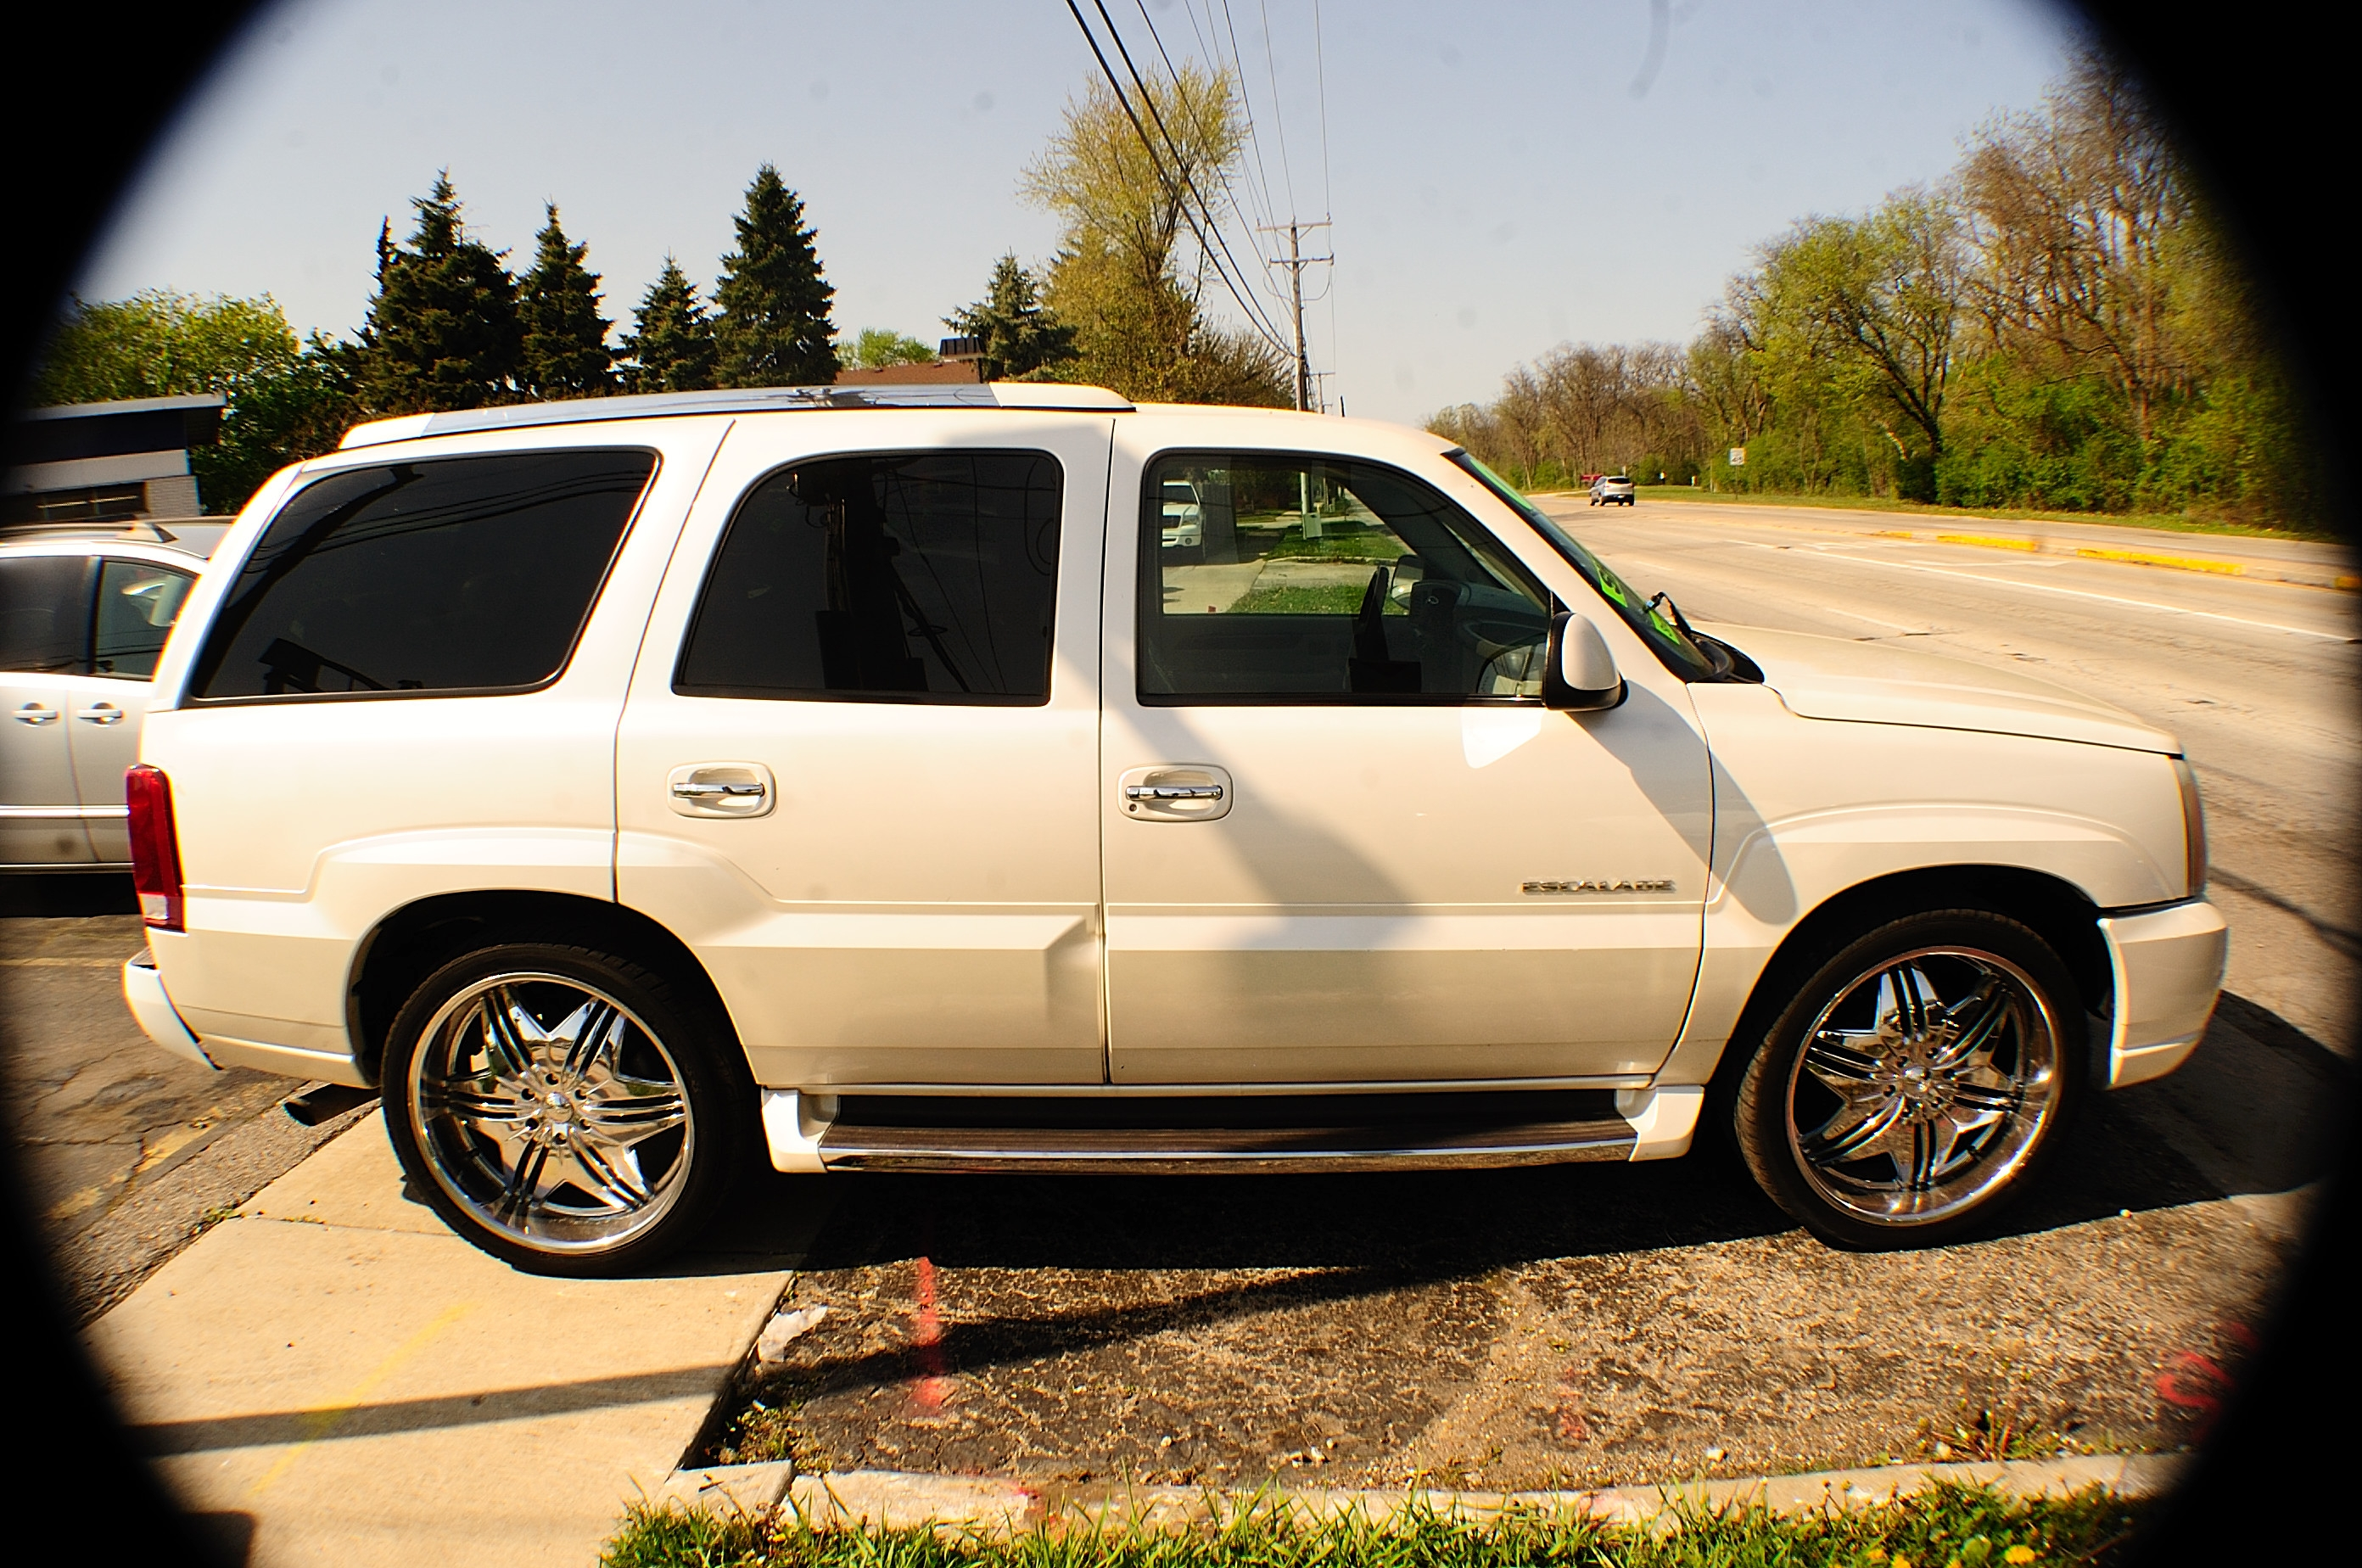 2003 Cadillac Escalade White TV Used SUV car sale Downers Grove Carpentersville Cicero